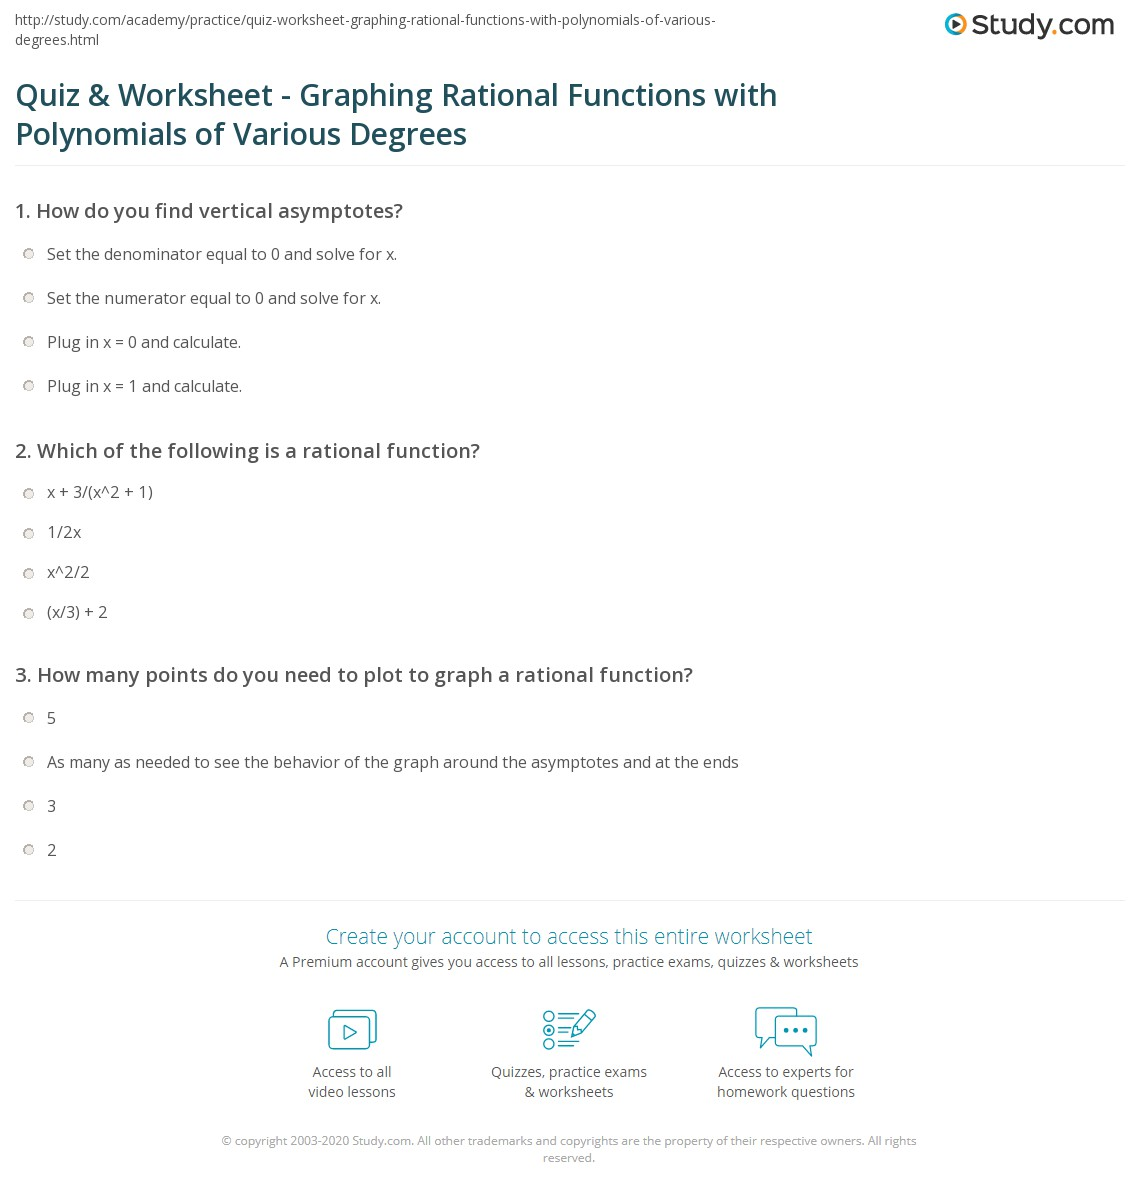 quiz worksheet graphing rational functions with polynomials of various degrees. Black Bedroom Furniture Sets. Home Design Ideas